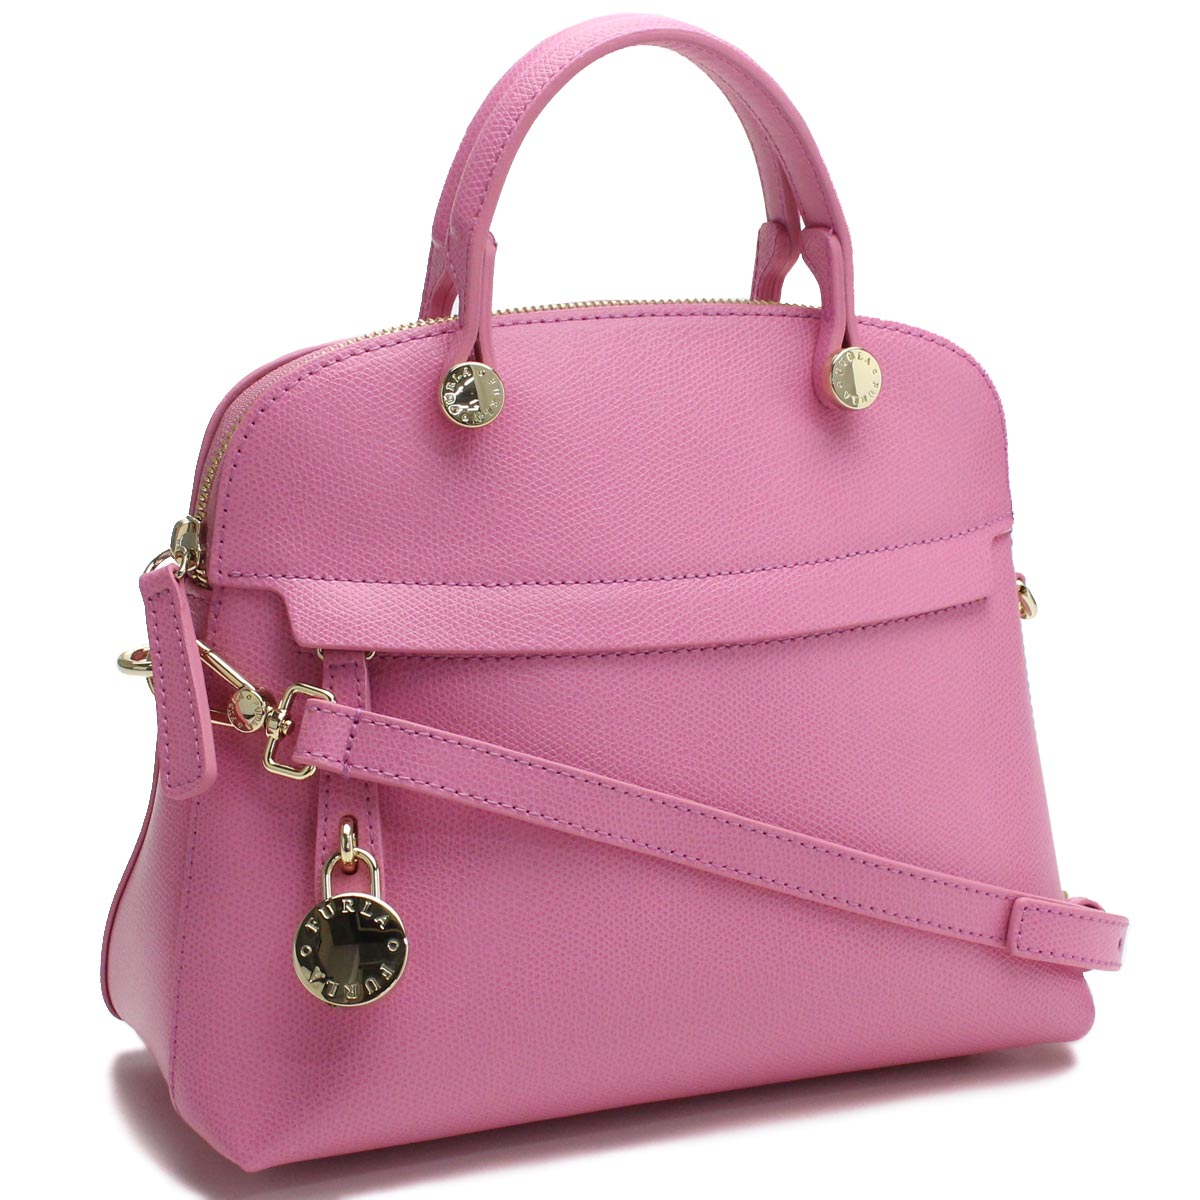 Hit The Total Brand Whole フルラ Furla Bag Piper 2way Handbag Bhv0 933234 Are Or9 Orchidea Pink System Rakuten Global Market